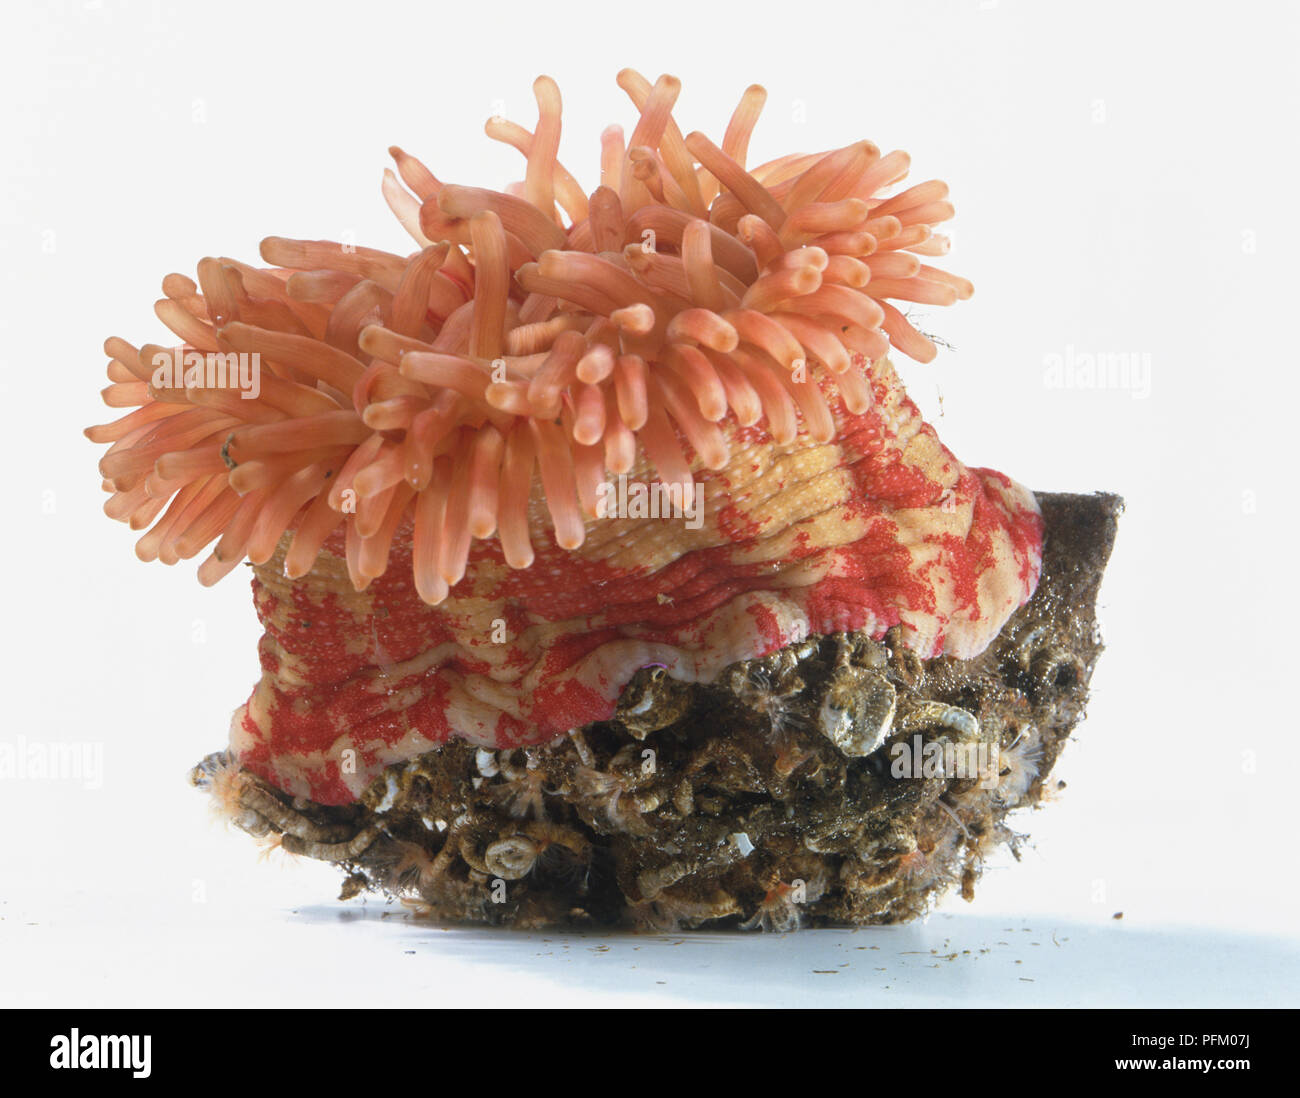 Sea Anemone Anatomy Stock Photos Sea Anemone Anatomy Stock Images